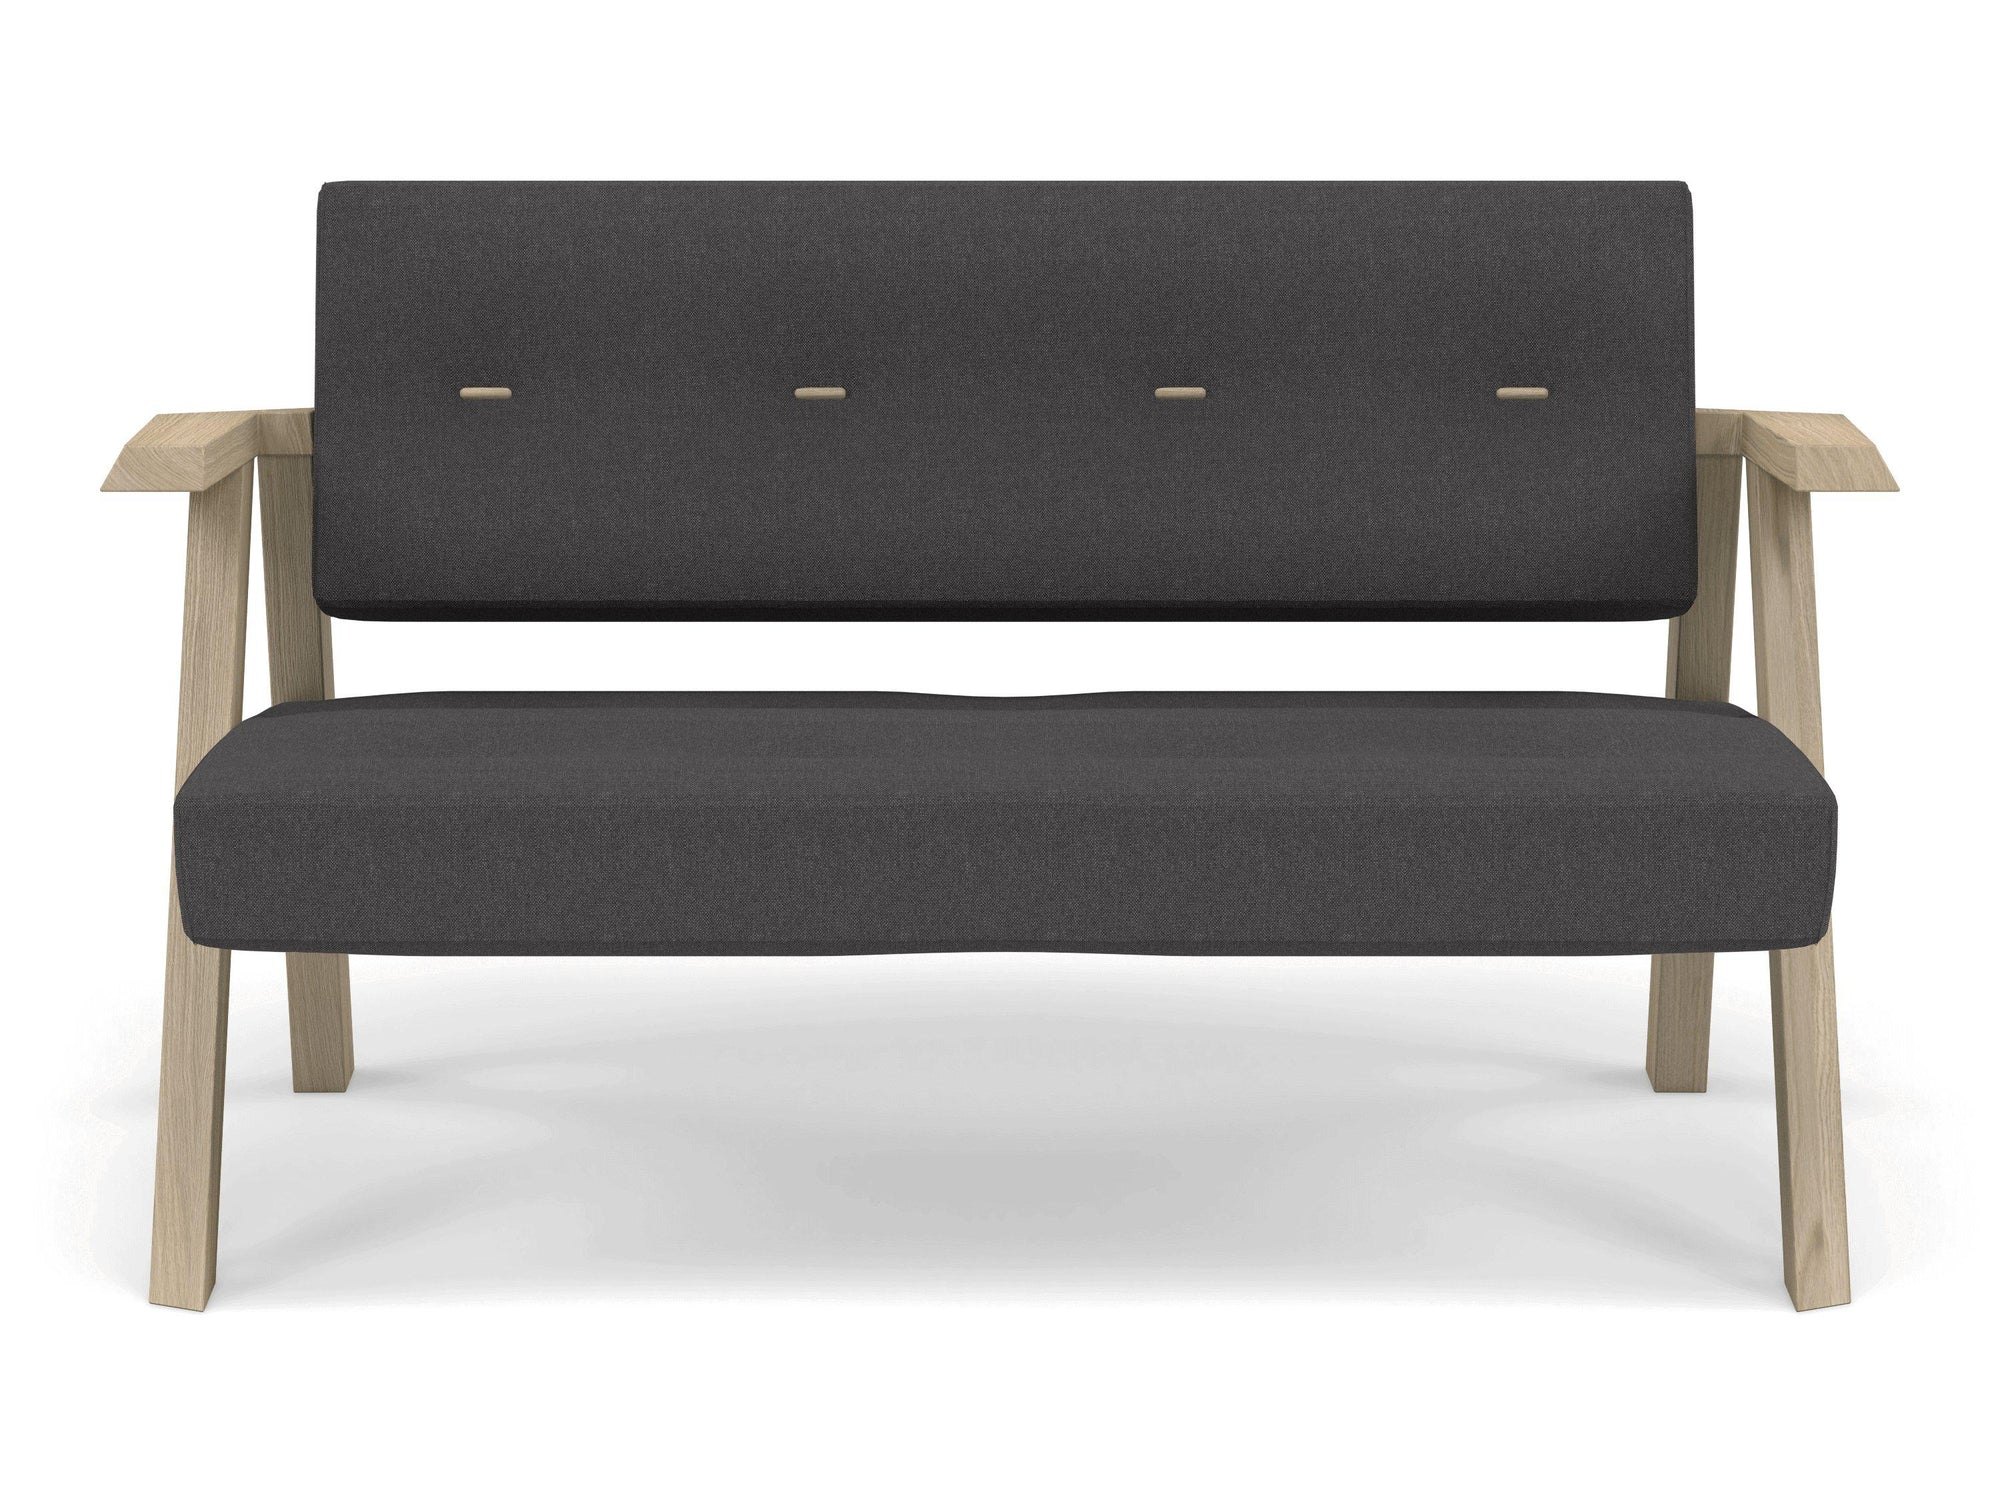 Classic Mid-century Design 2 Seater Sofa Armchair with Buttons in Slate Grey Fabric-Natural Oak-Distinct Designs (London) Ltd